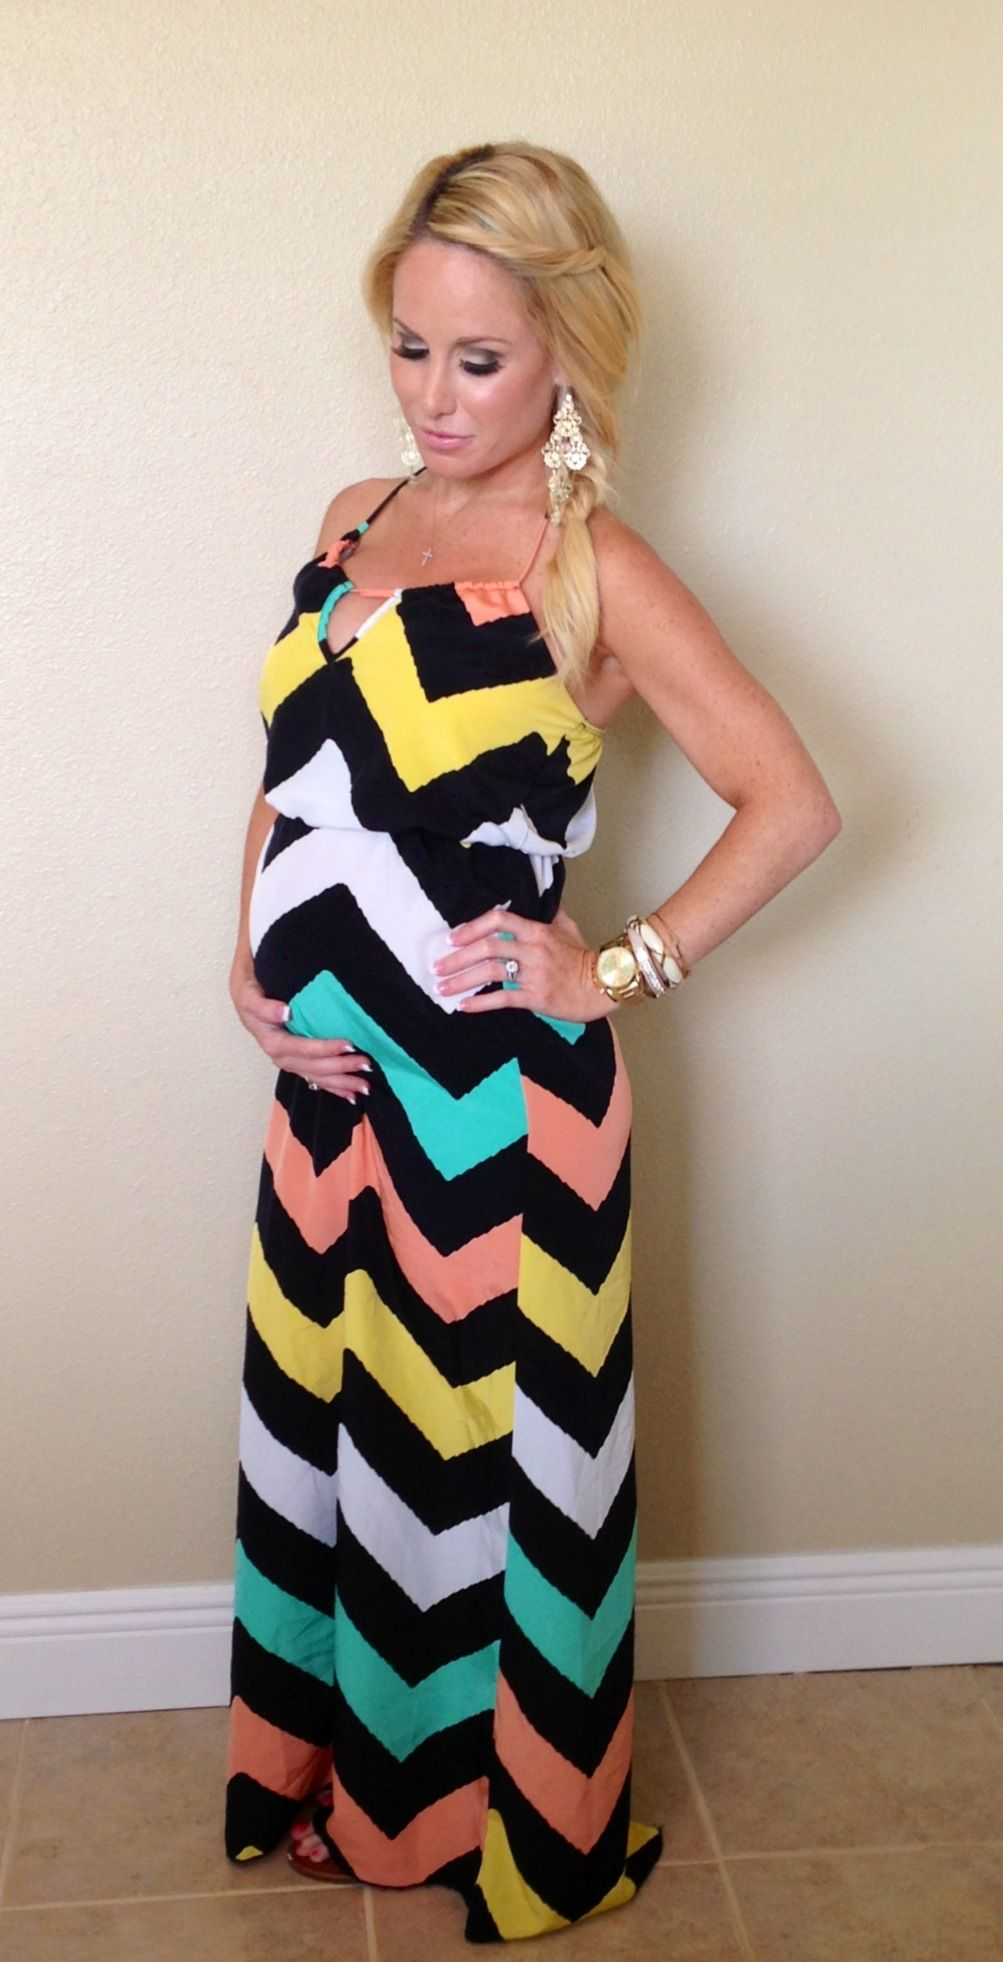 a2a9a1d9af029 can't wait to wear maxi dresses this spring while pregnant - and postpartum  this summer, obviously.